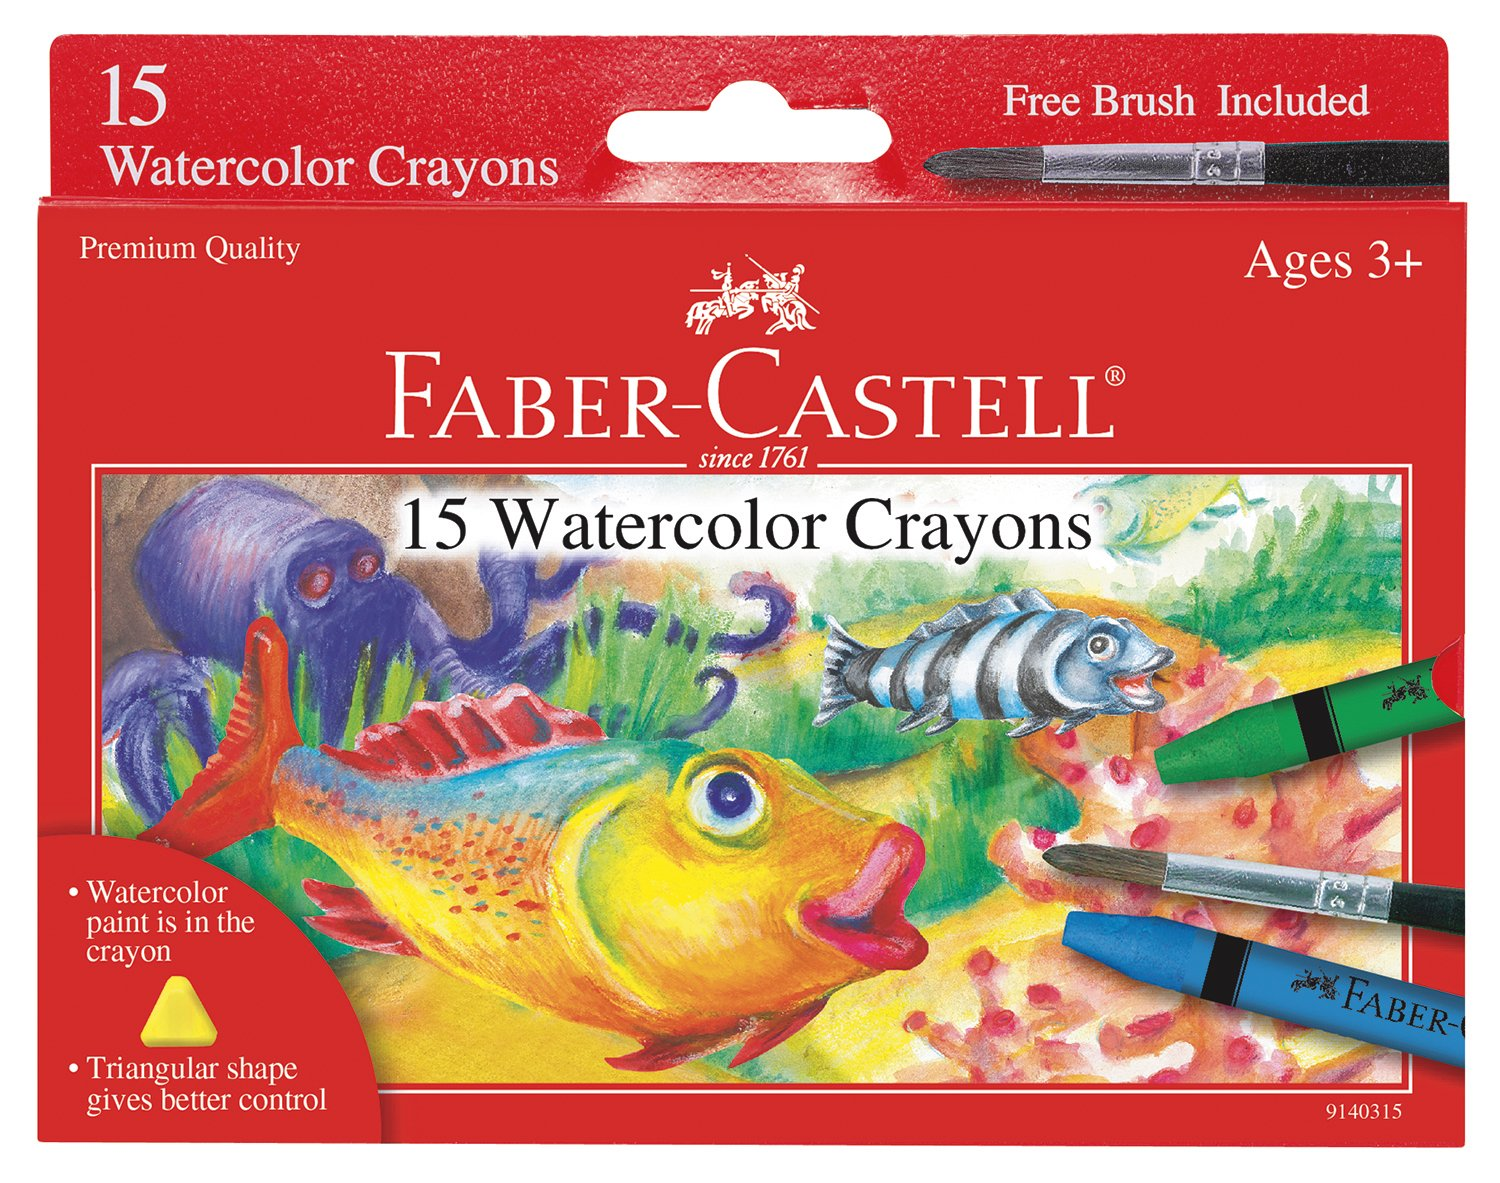 Faber-Castell Watercolor Crayons with Brush, 15 Colors - Premium Quality Art Supplies for Kids by Faber-Castell